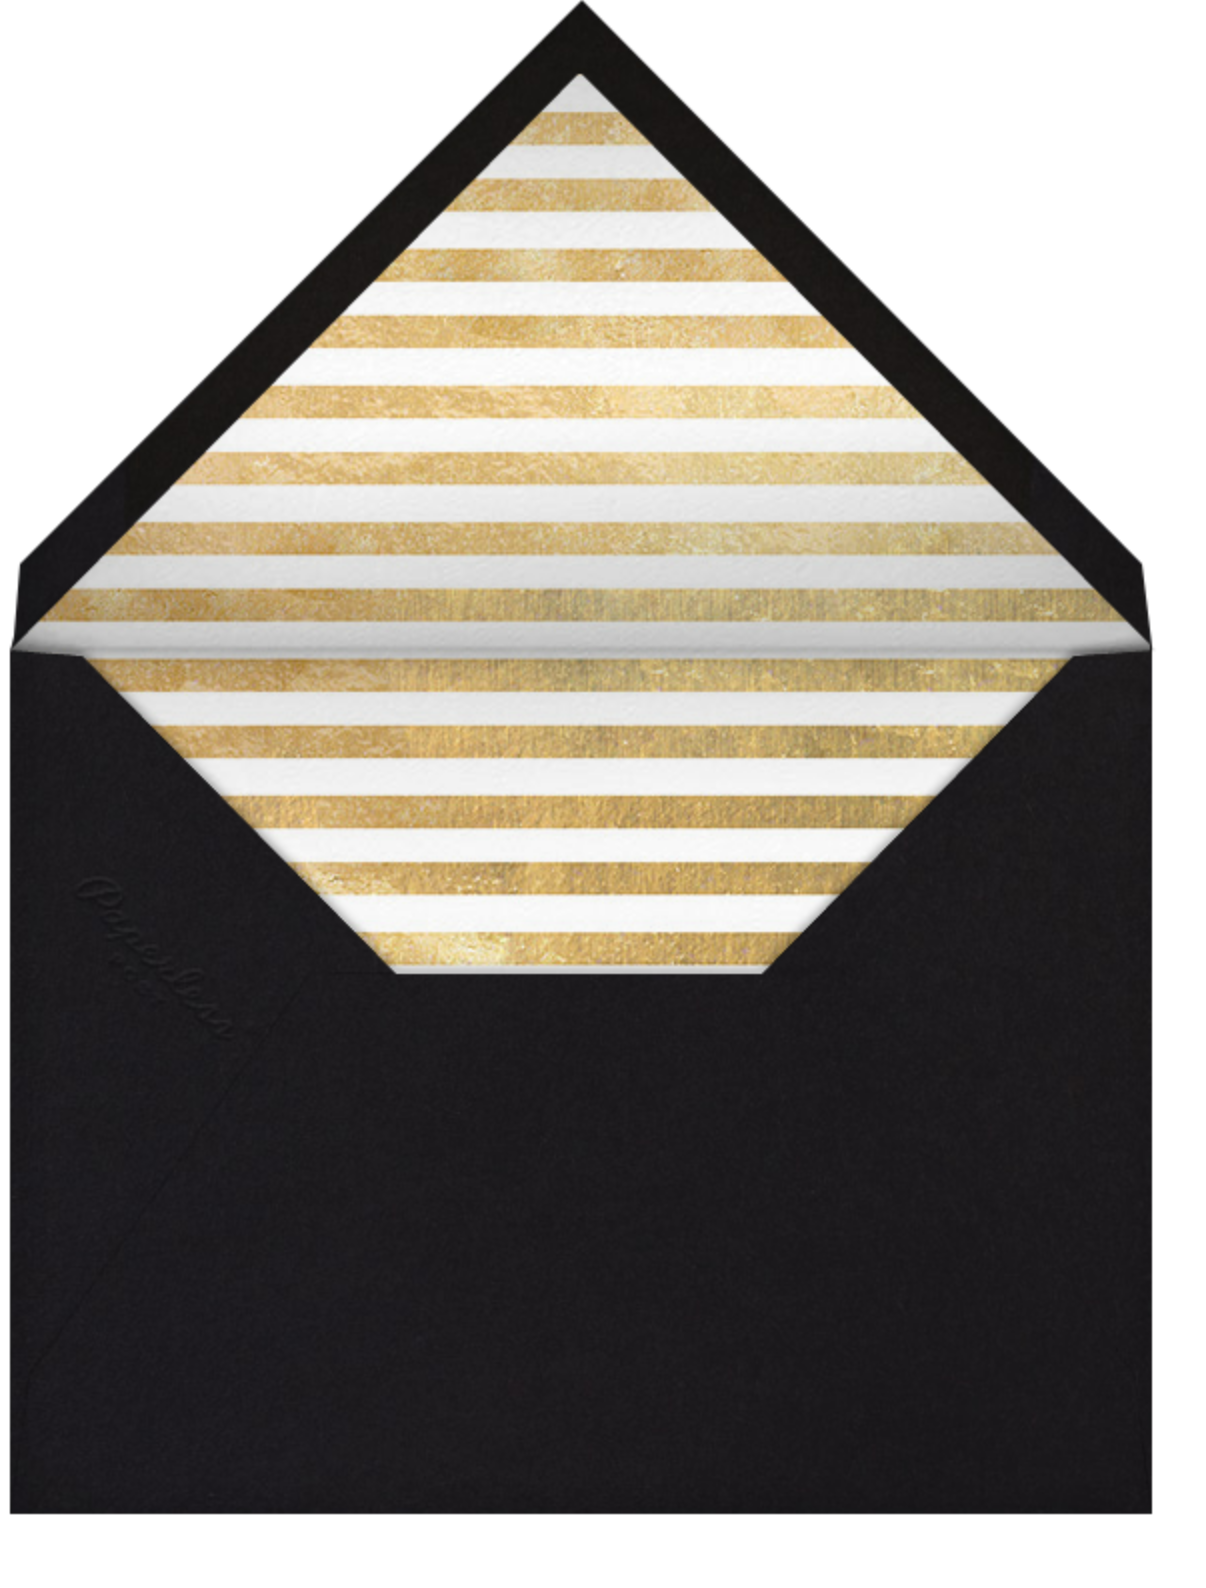 Lanterns - Gold - Paperless Post - Retirement party - envelope back